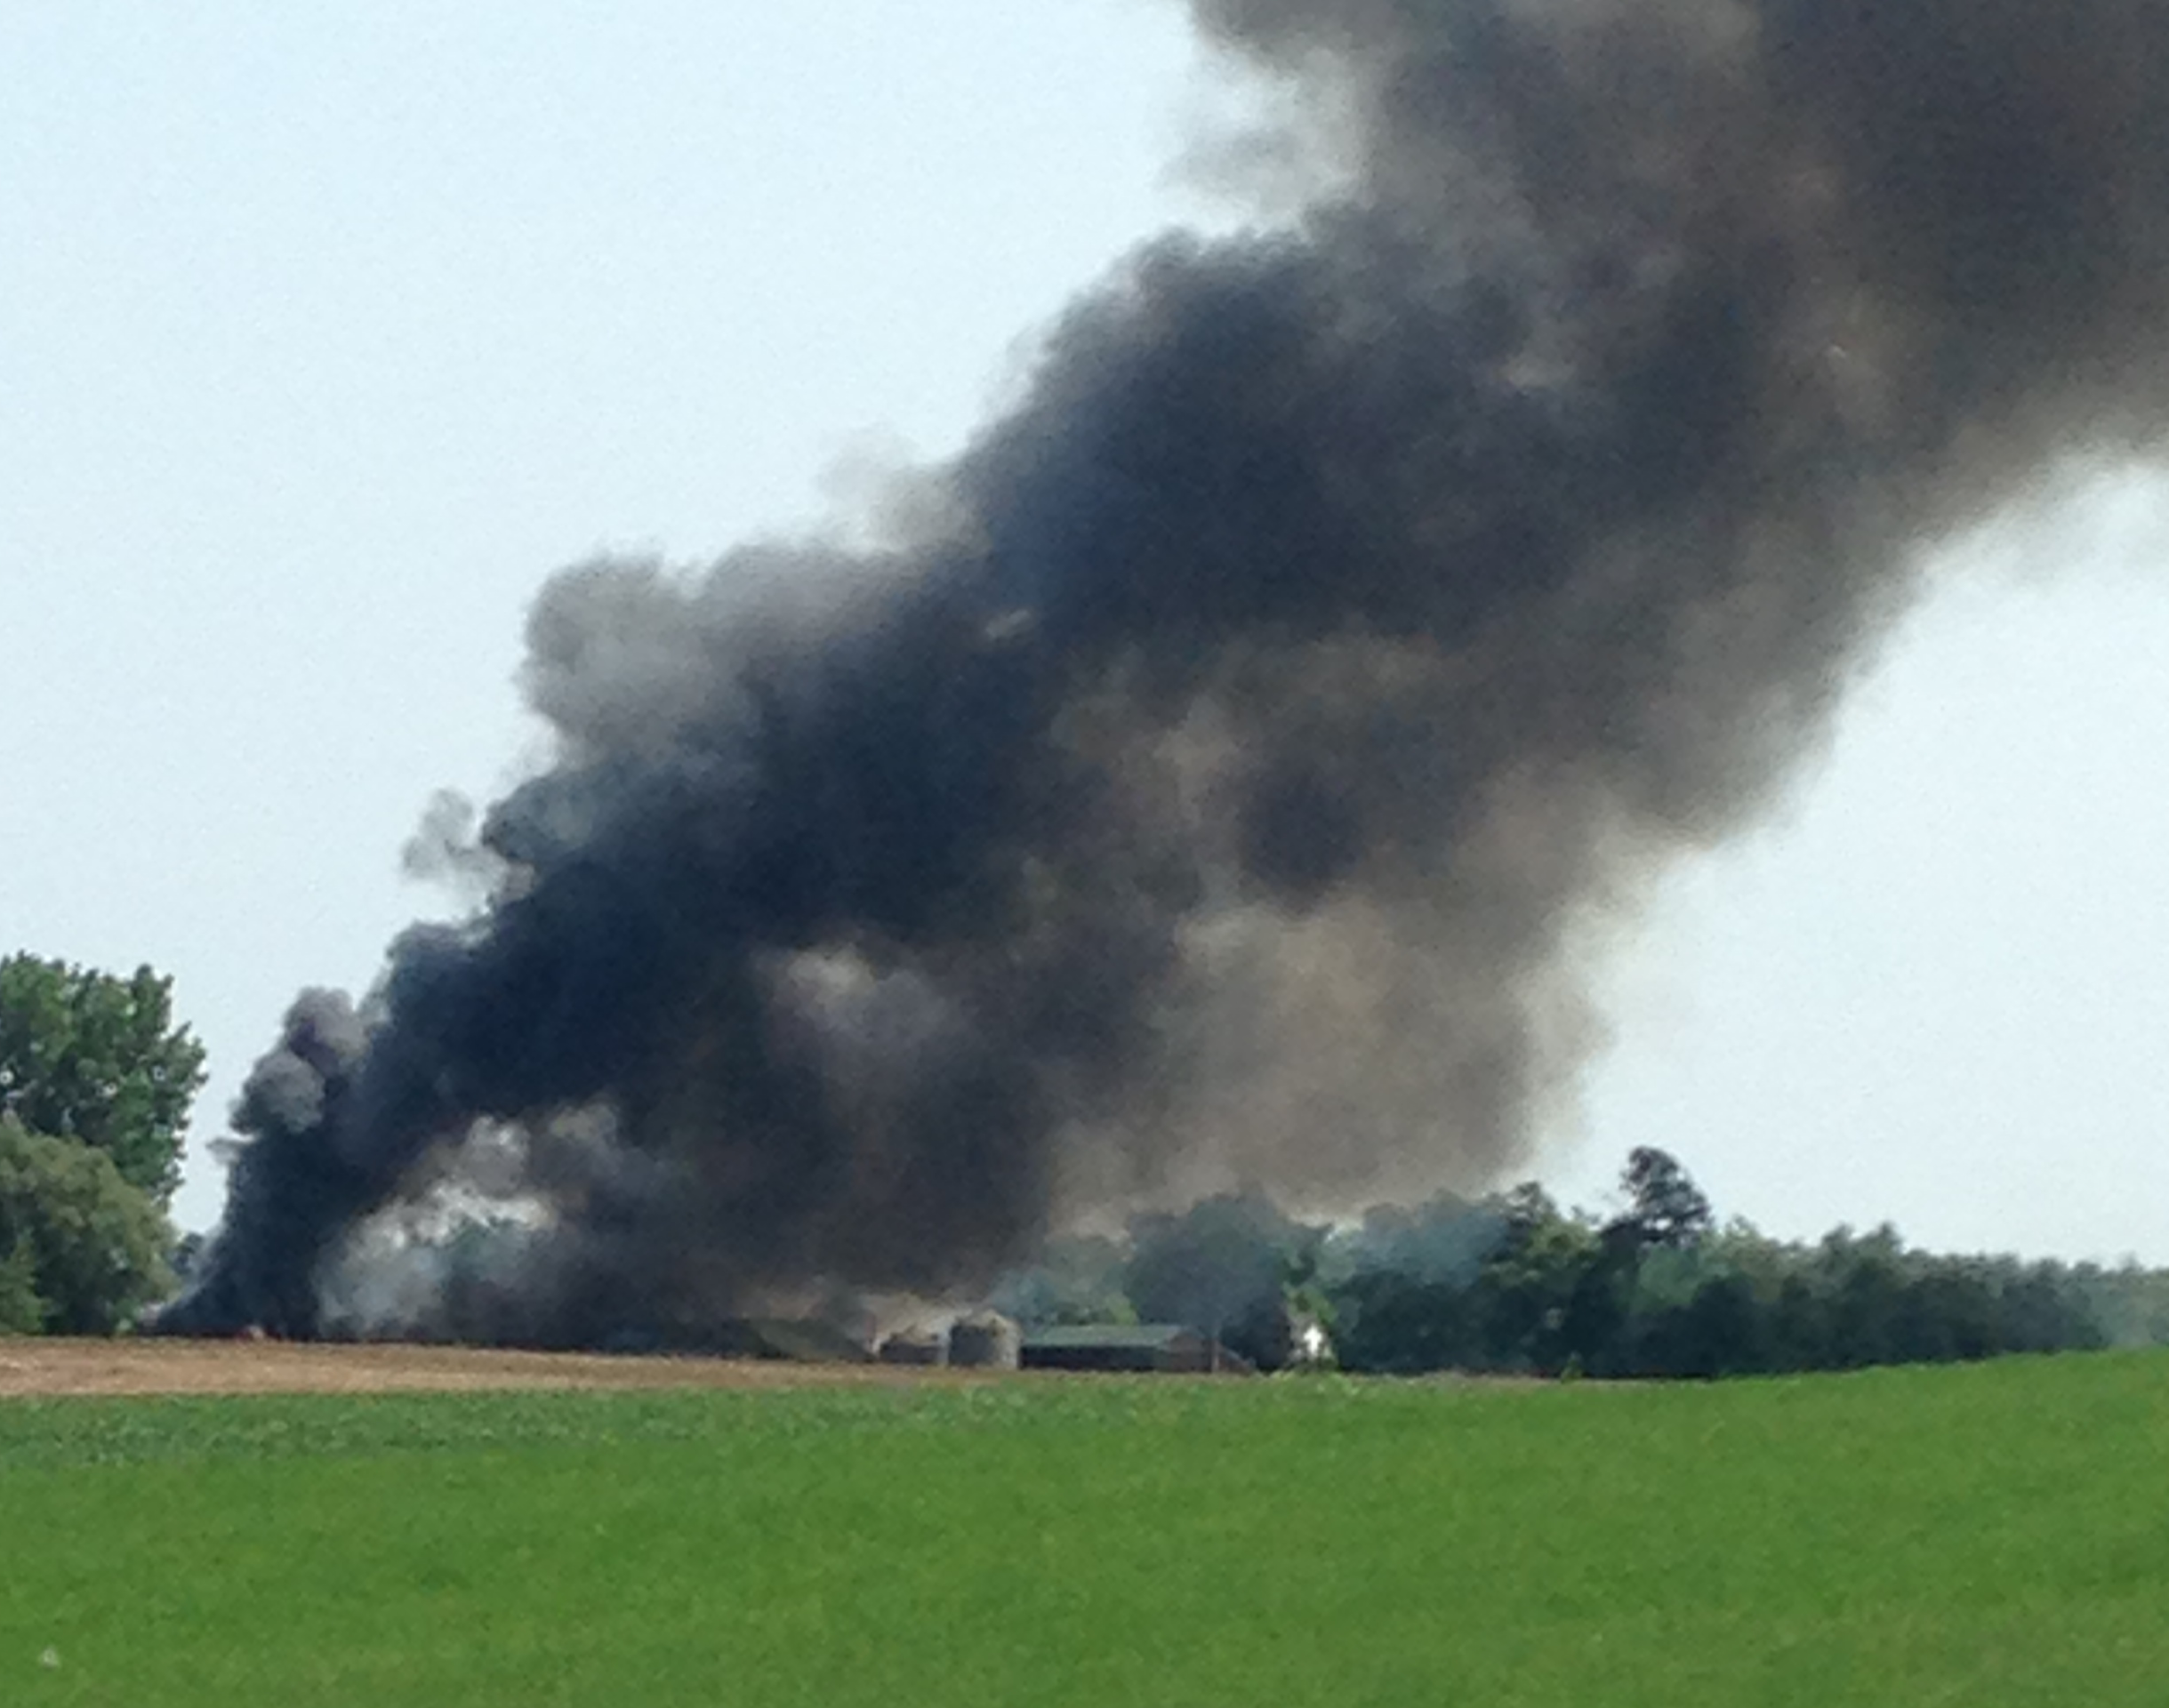 Fire crews battle a barn fire on Dorchester Rd. in Thames Centre, August 9, 2014. (Photo courtesy of Kristy Read)